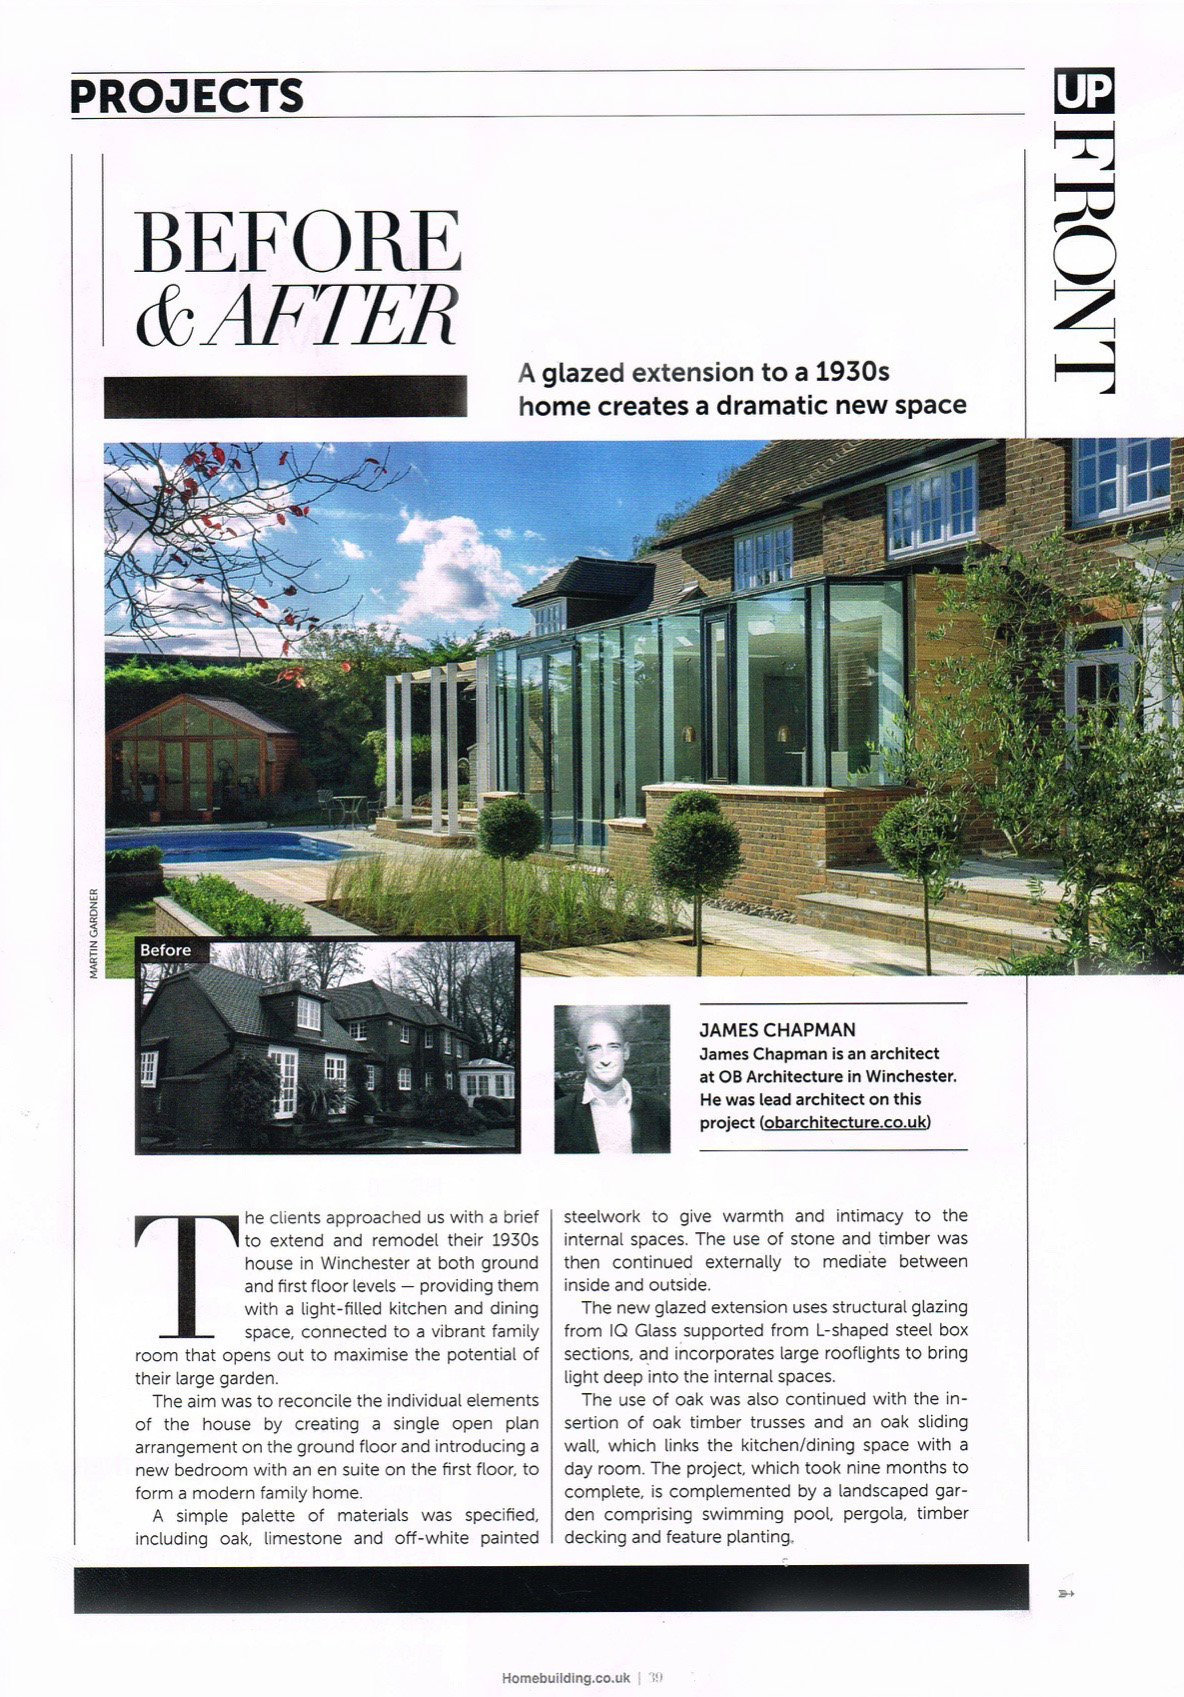 Homebuilding_Renovating_May_2016_OB_Architecture_Andover_Road_Extension